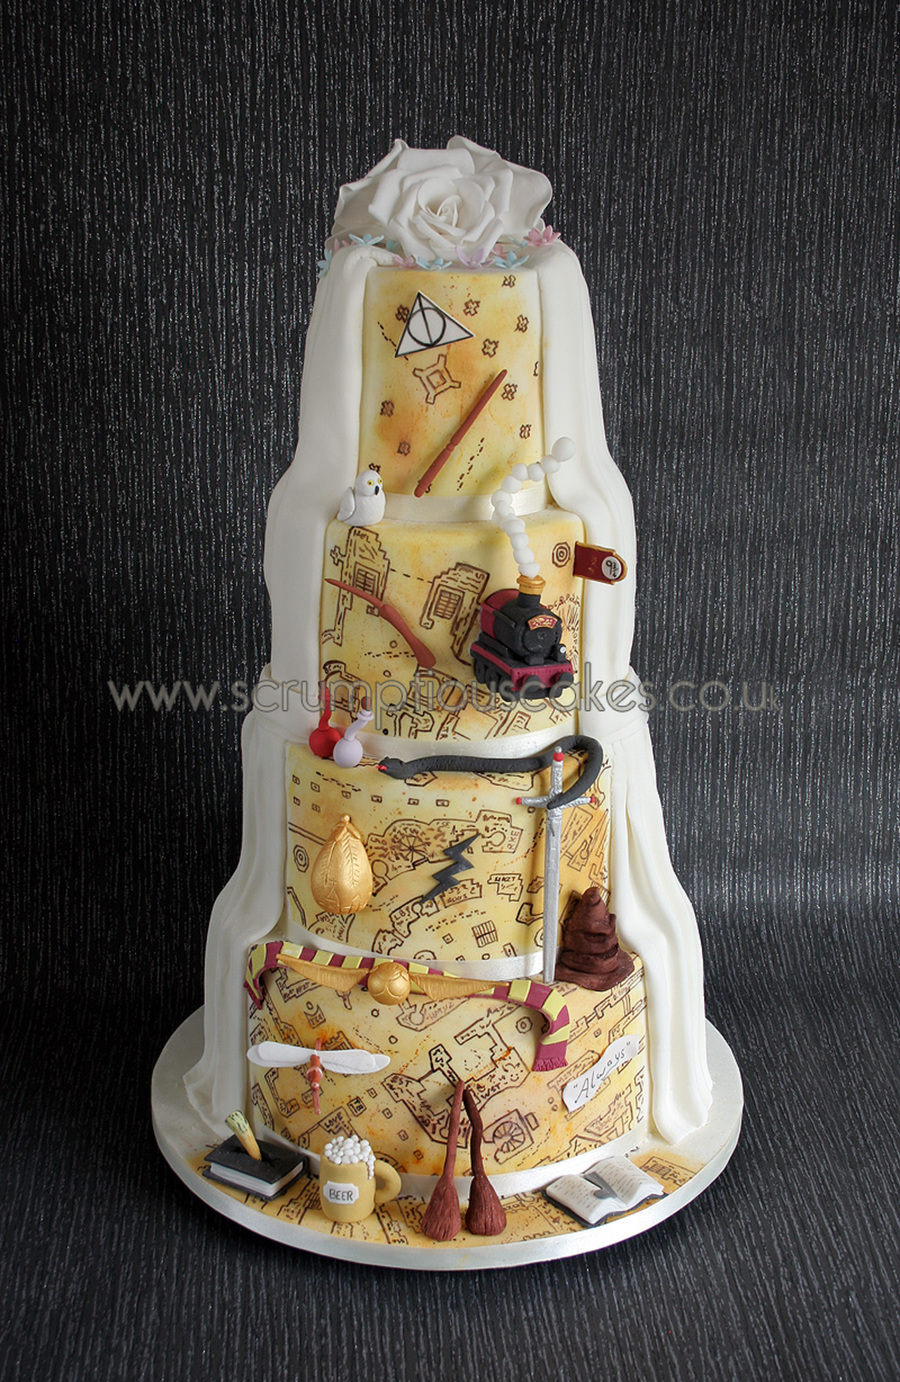 Harry Potter Wedding Cake - CakeCentral.com